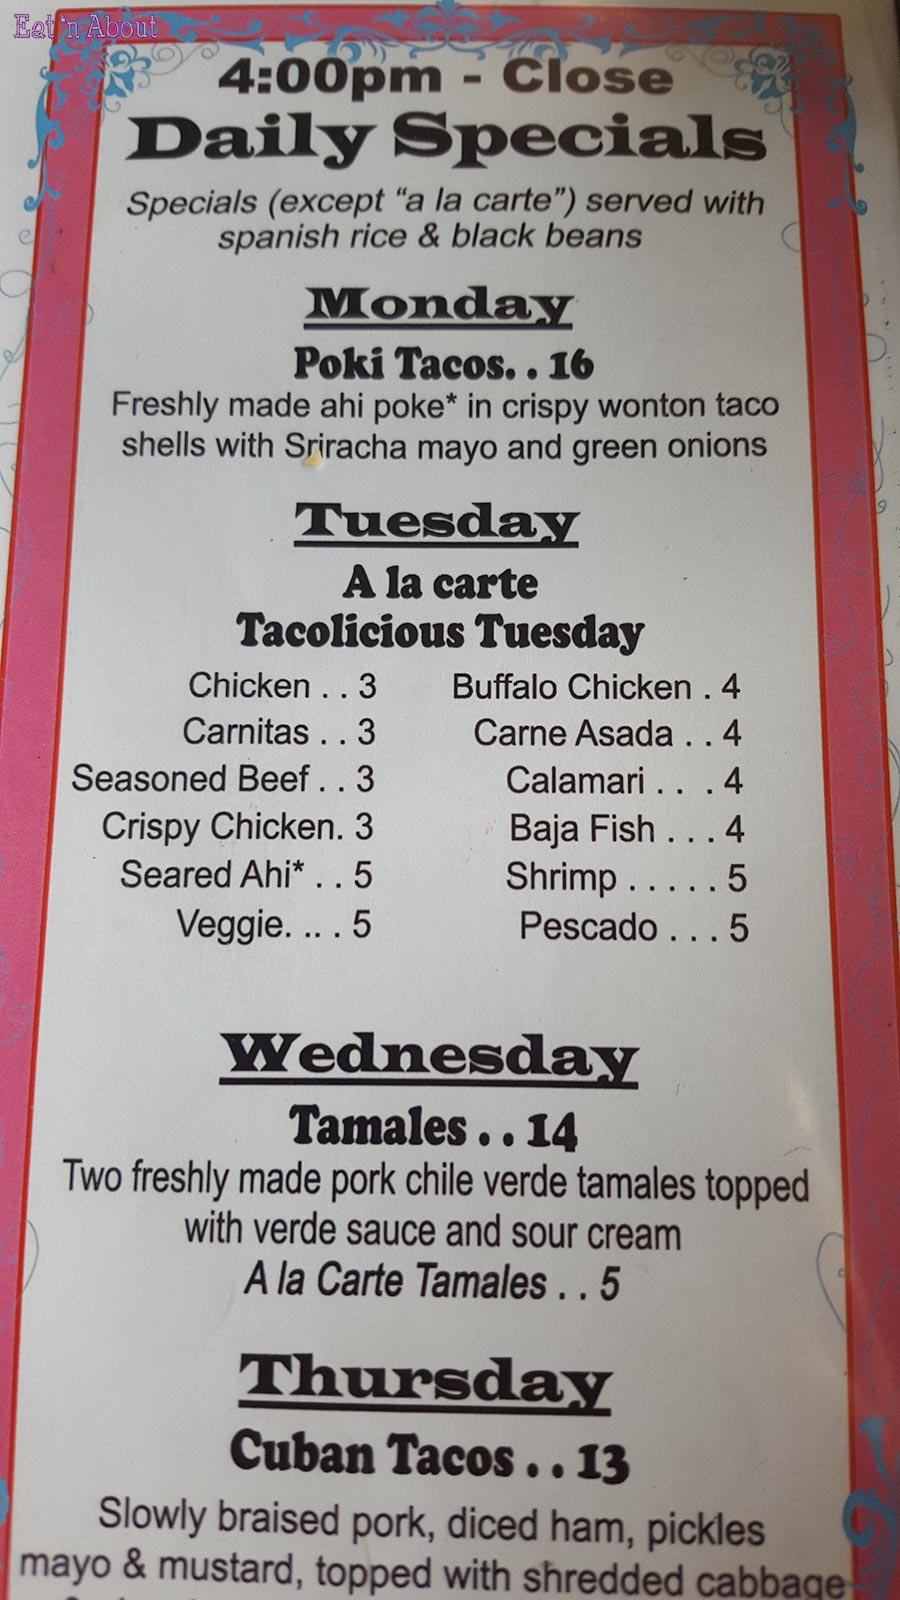 Fred's Mexican Cafe Maui - Daily Specials menu